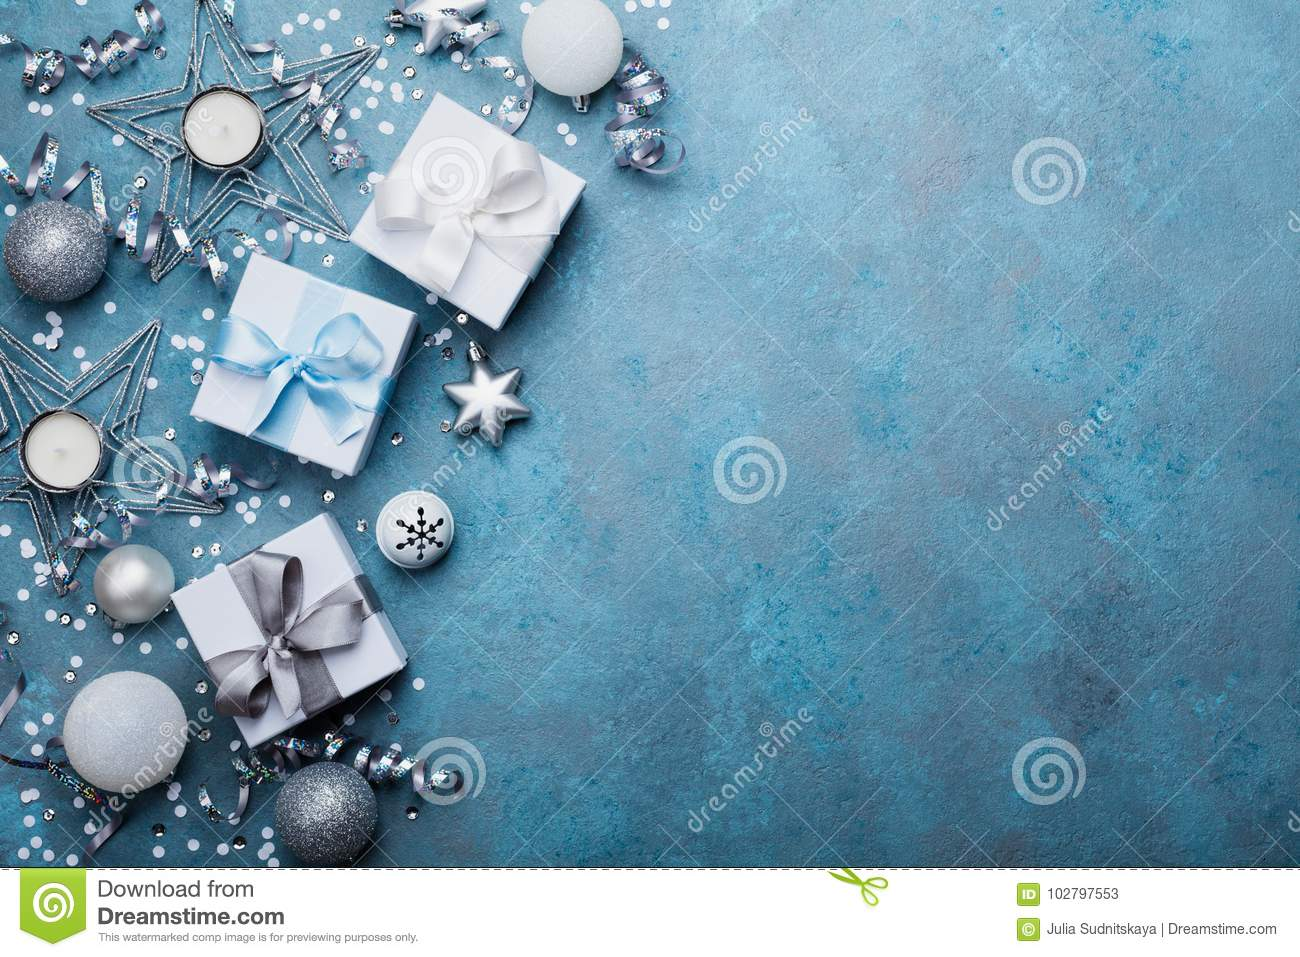 Holiday background with christmas decoration and gift boxes top view. Festive greeting card. Flat lay style.